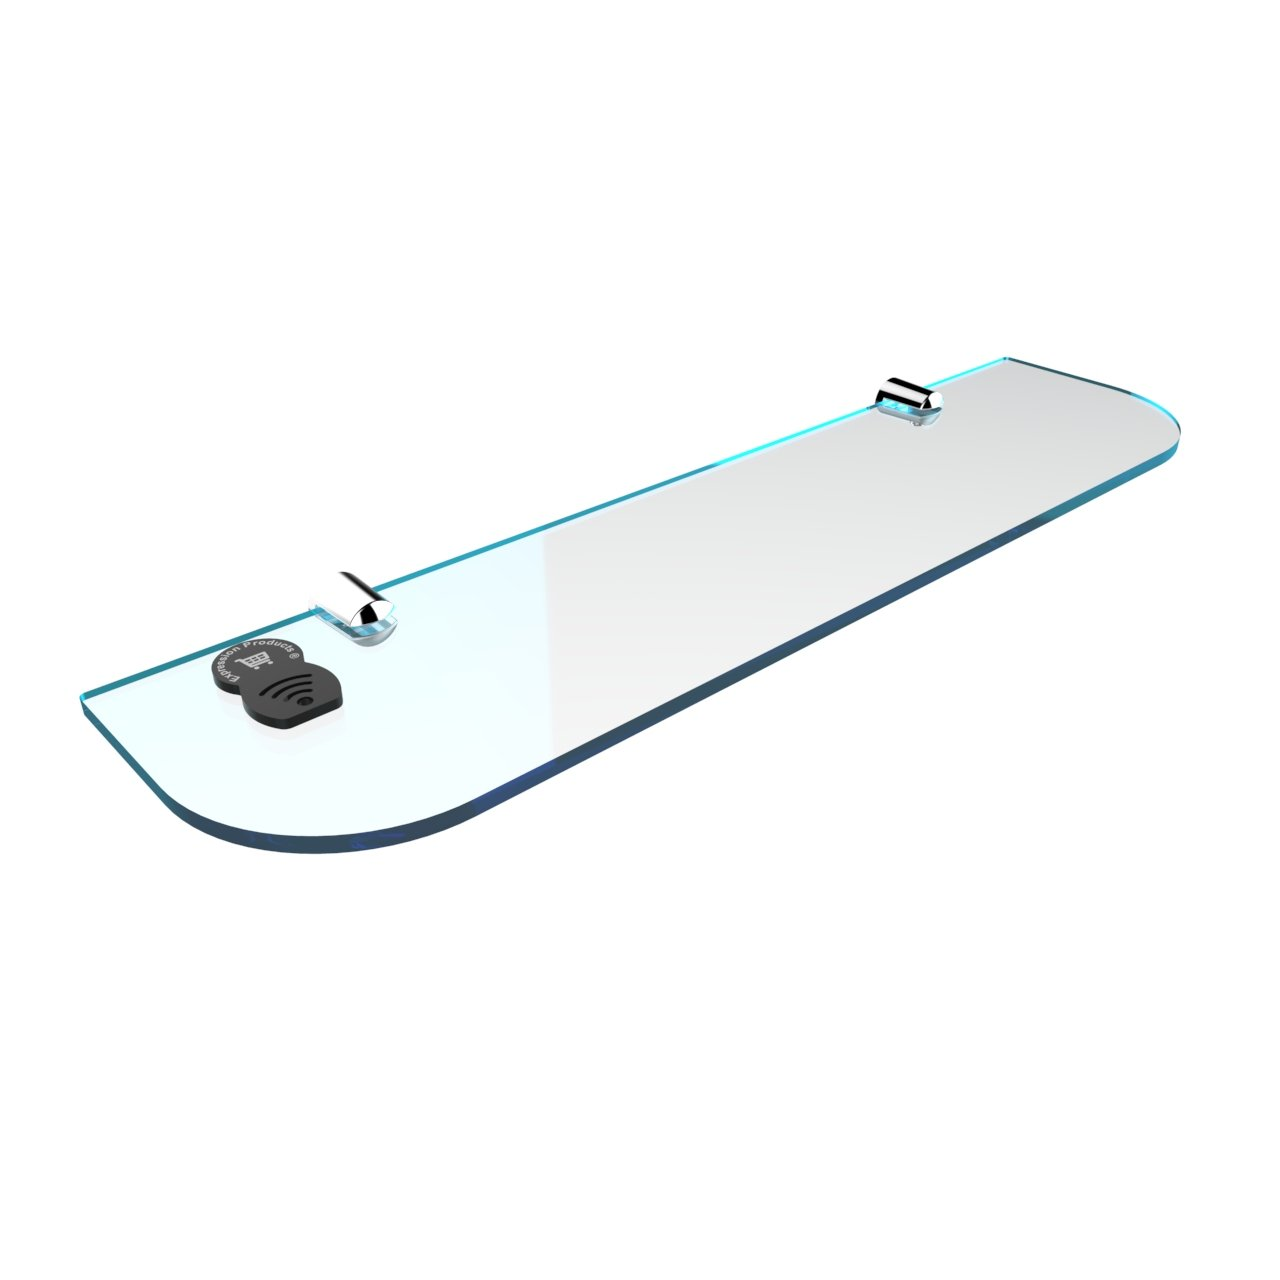 Black Bathroom Expression Products Straight Acrylic Safety Shelf 400mm x100mm Bedroom Office Free Trolley Token Material Sample Included per Shipment